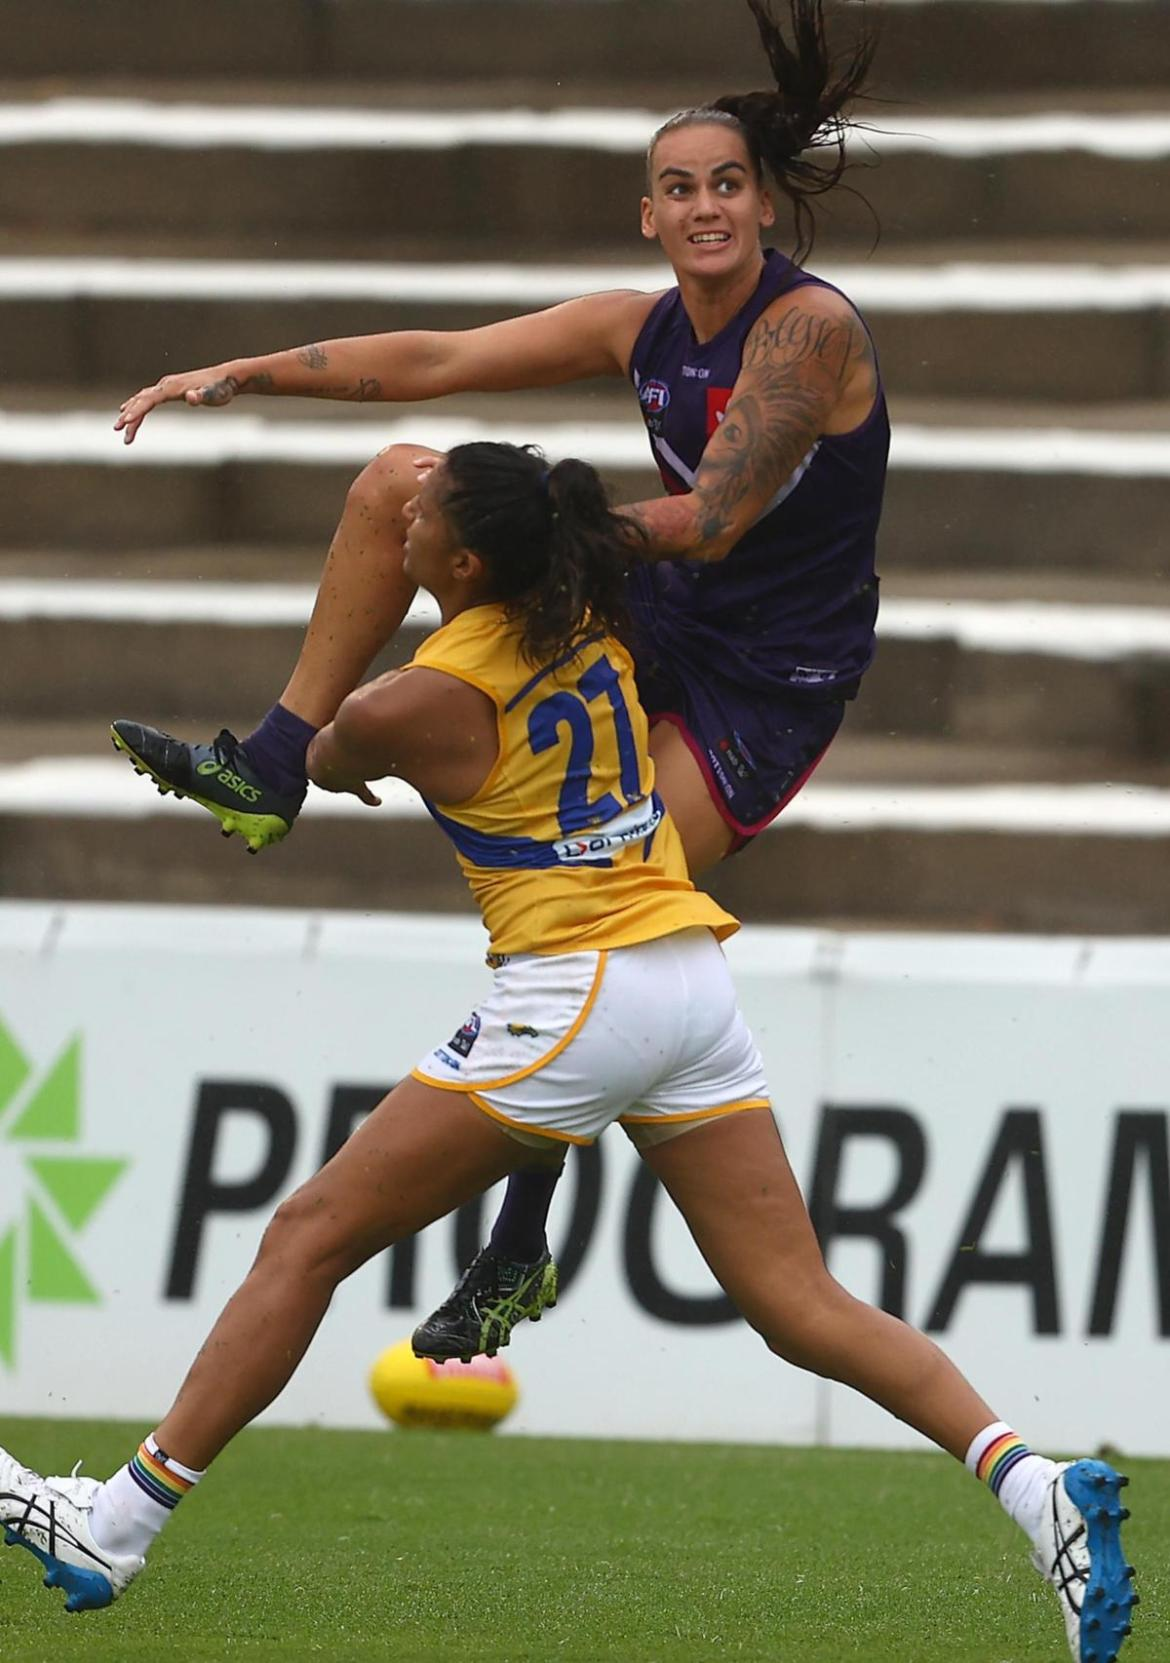 Gemma Houghton snaps a goal over her shoulder in the second term.